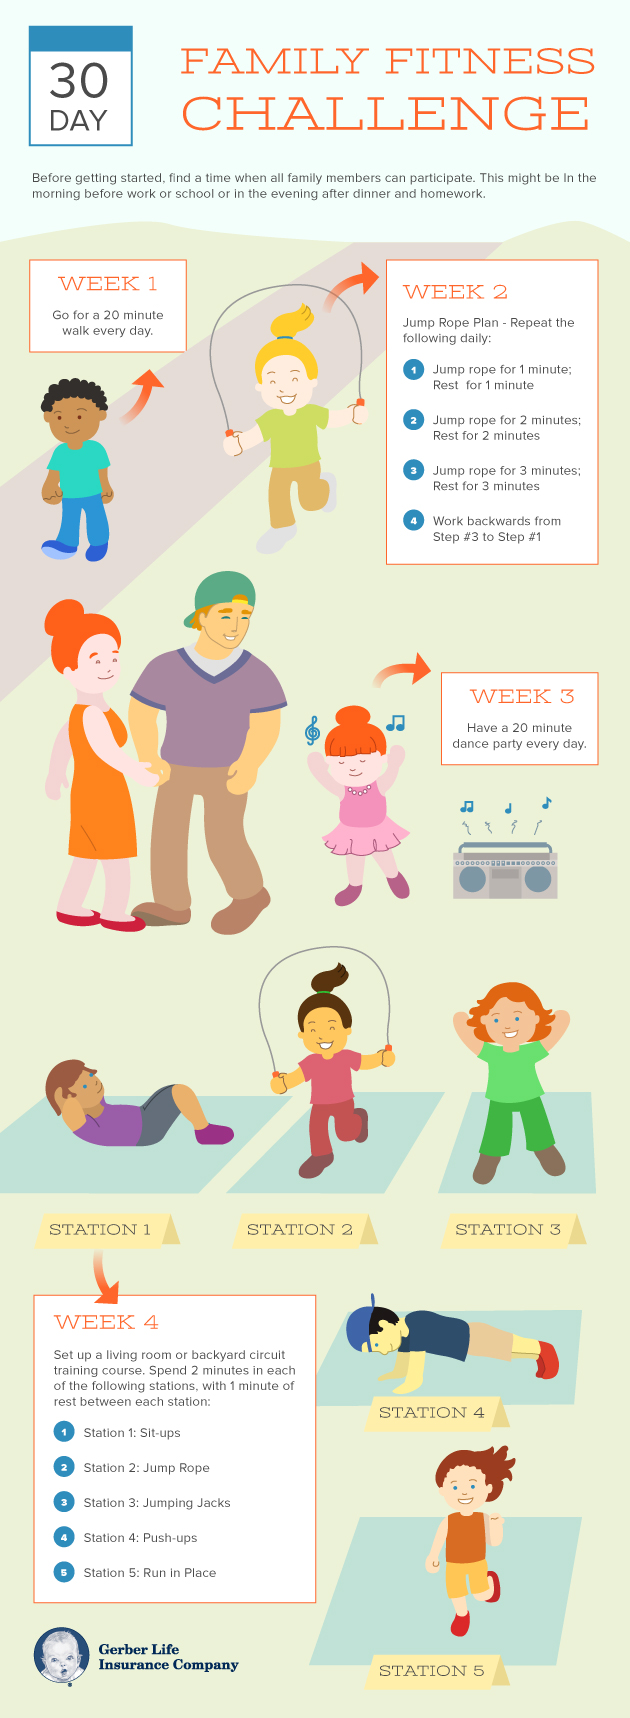 Family fitness challenge infographic